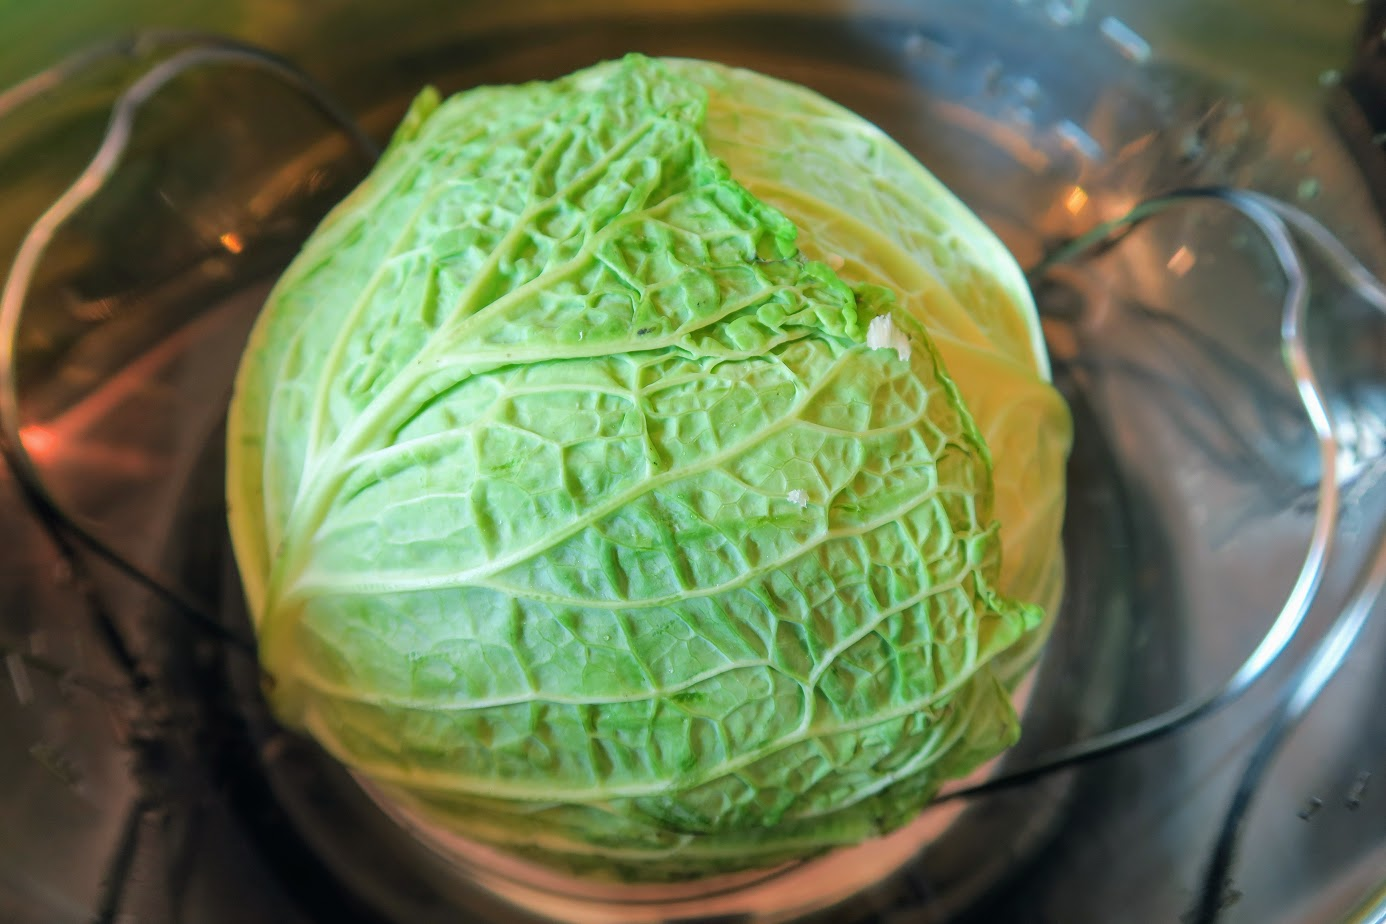 Cabbage on the steamer insert inside the Instant Pot with the core side down towards the water